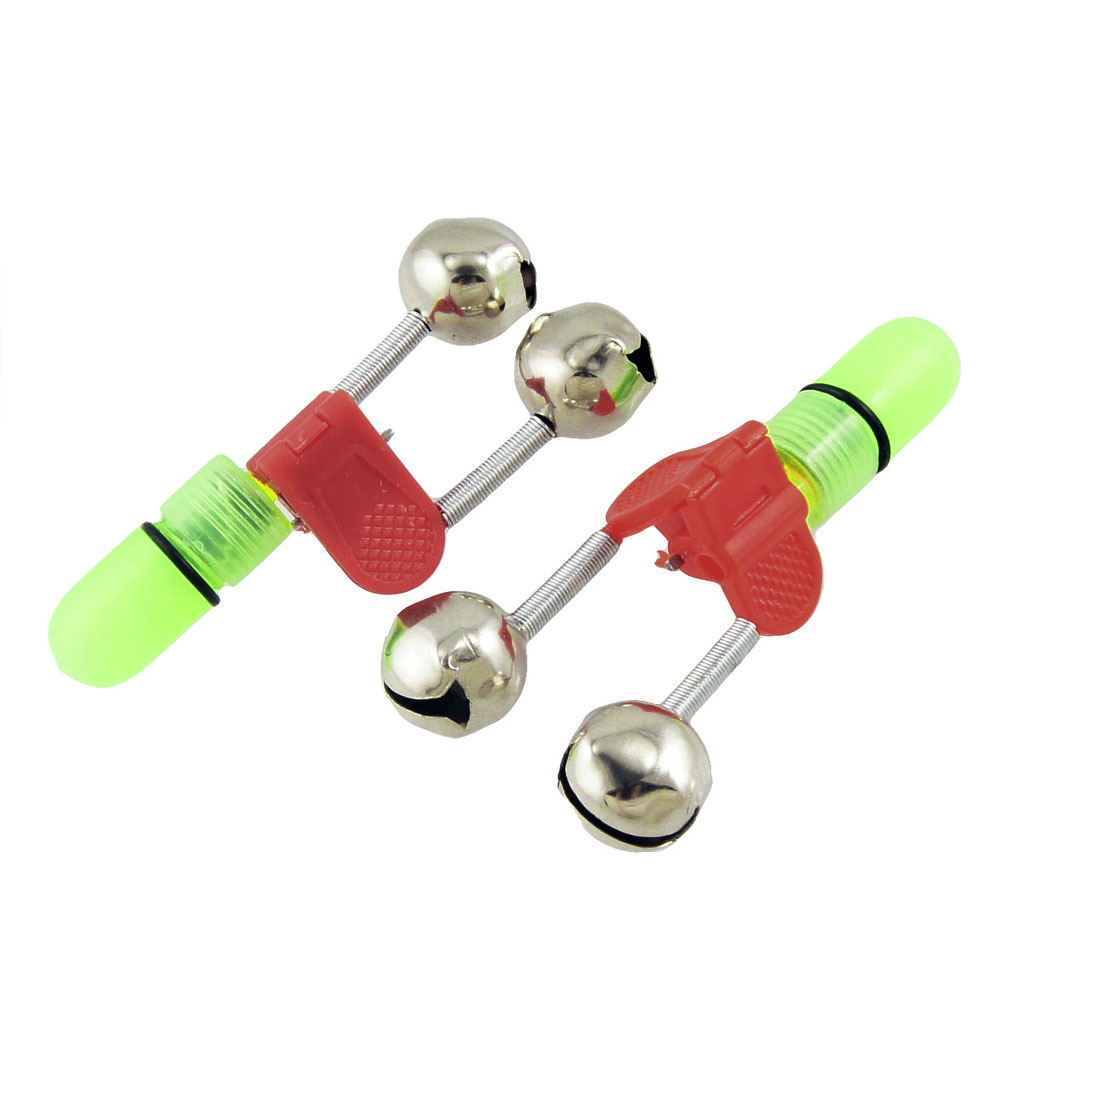 3 Pcs Fishing Rod Blue LED Lamp Bite Alarm Alert Ring Bells w Red Clip